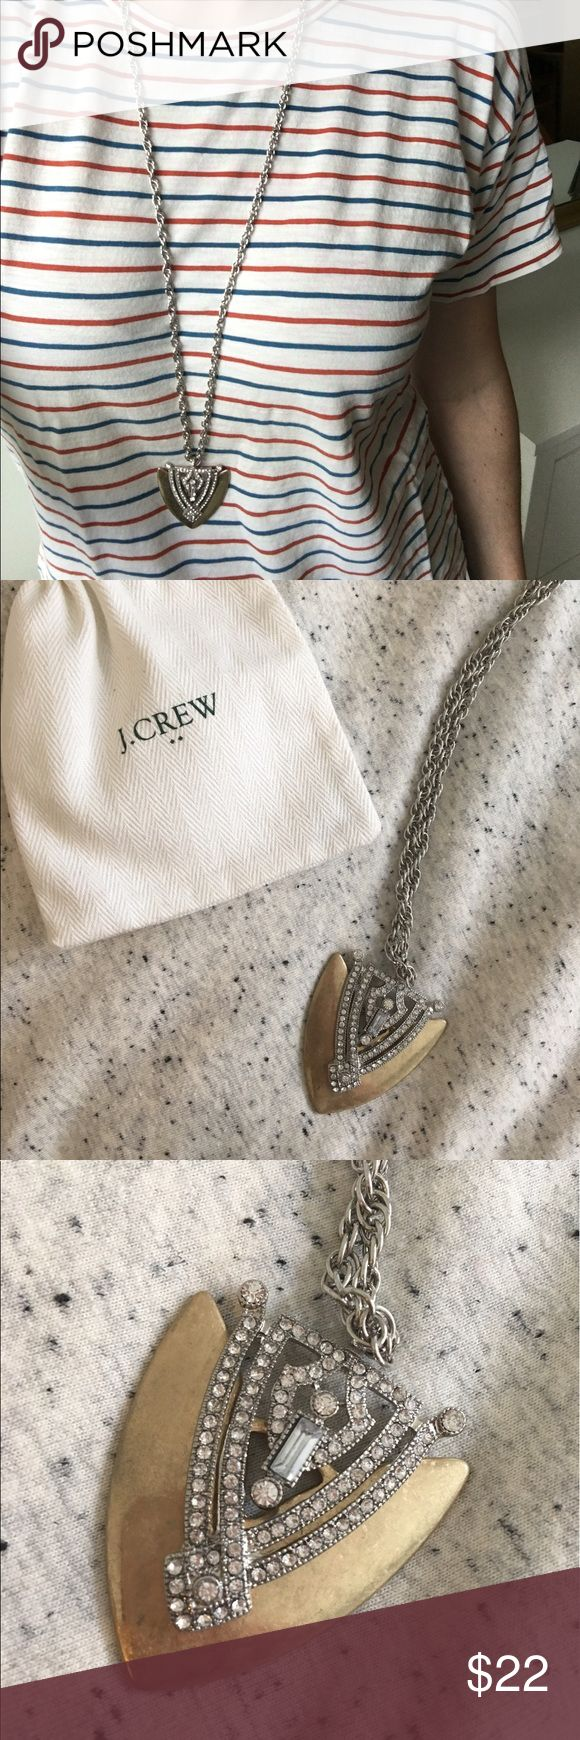 "J Crew Long Gold Necklace Beautiful Gold and Crystal J Crew Necklace. 31"" long chain with extra 3"" adjustable for longer length. Jewelry Necklaces"